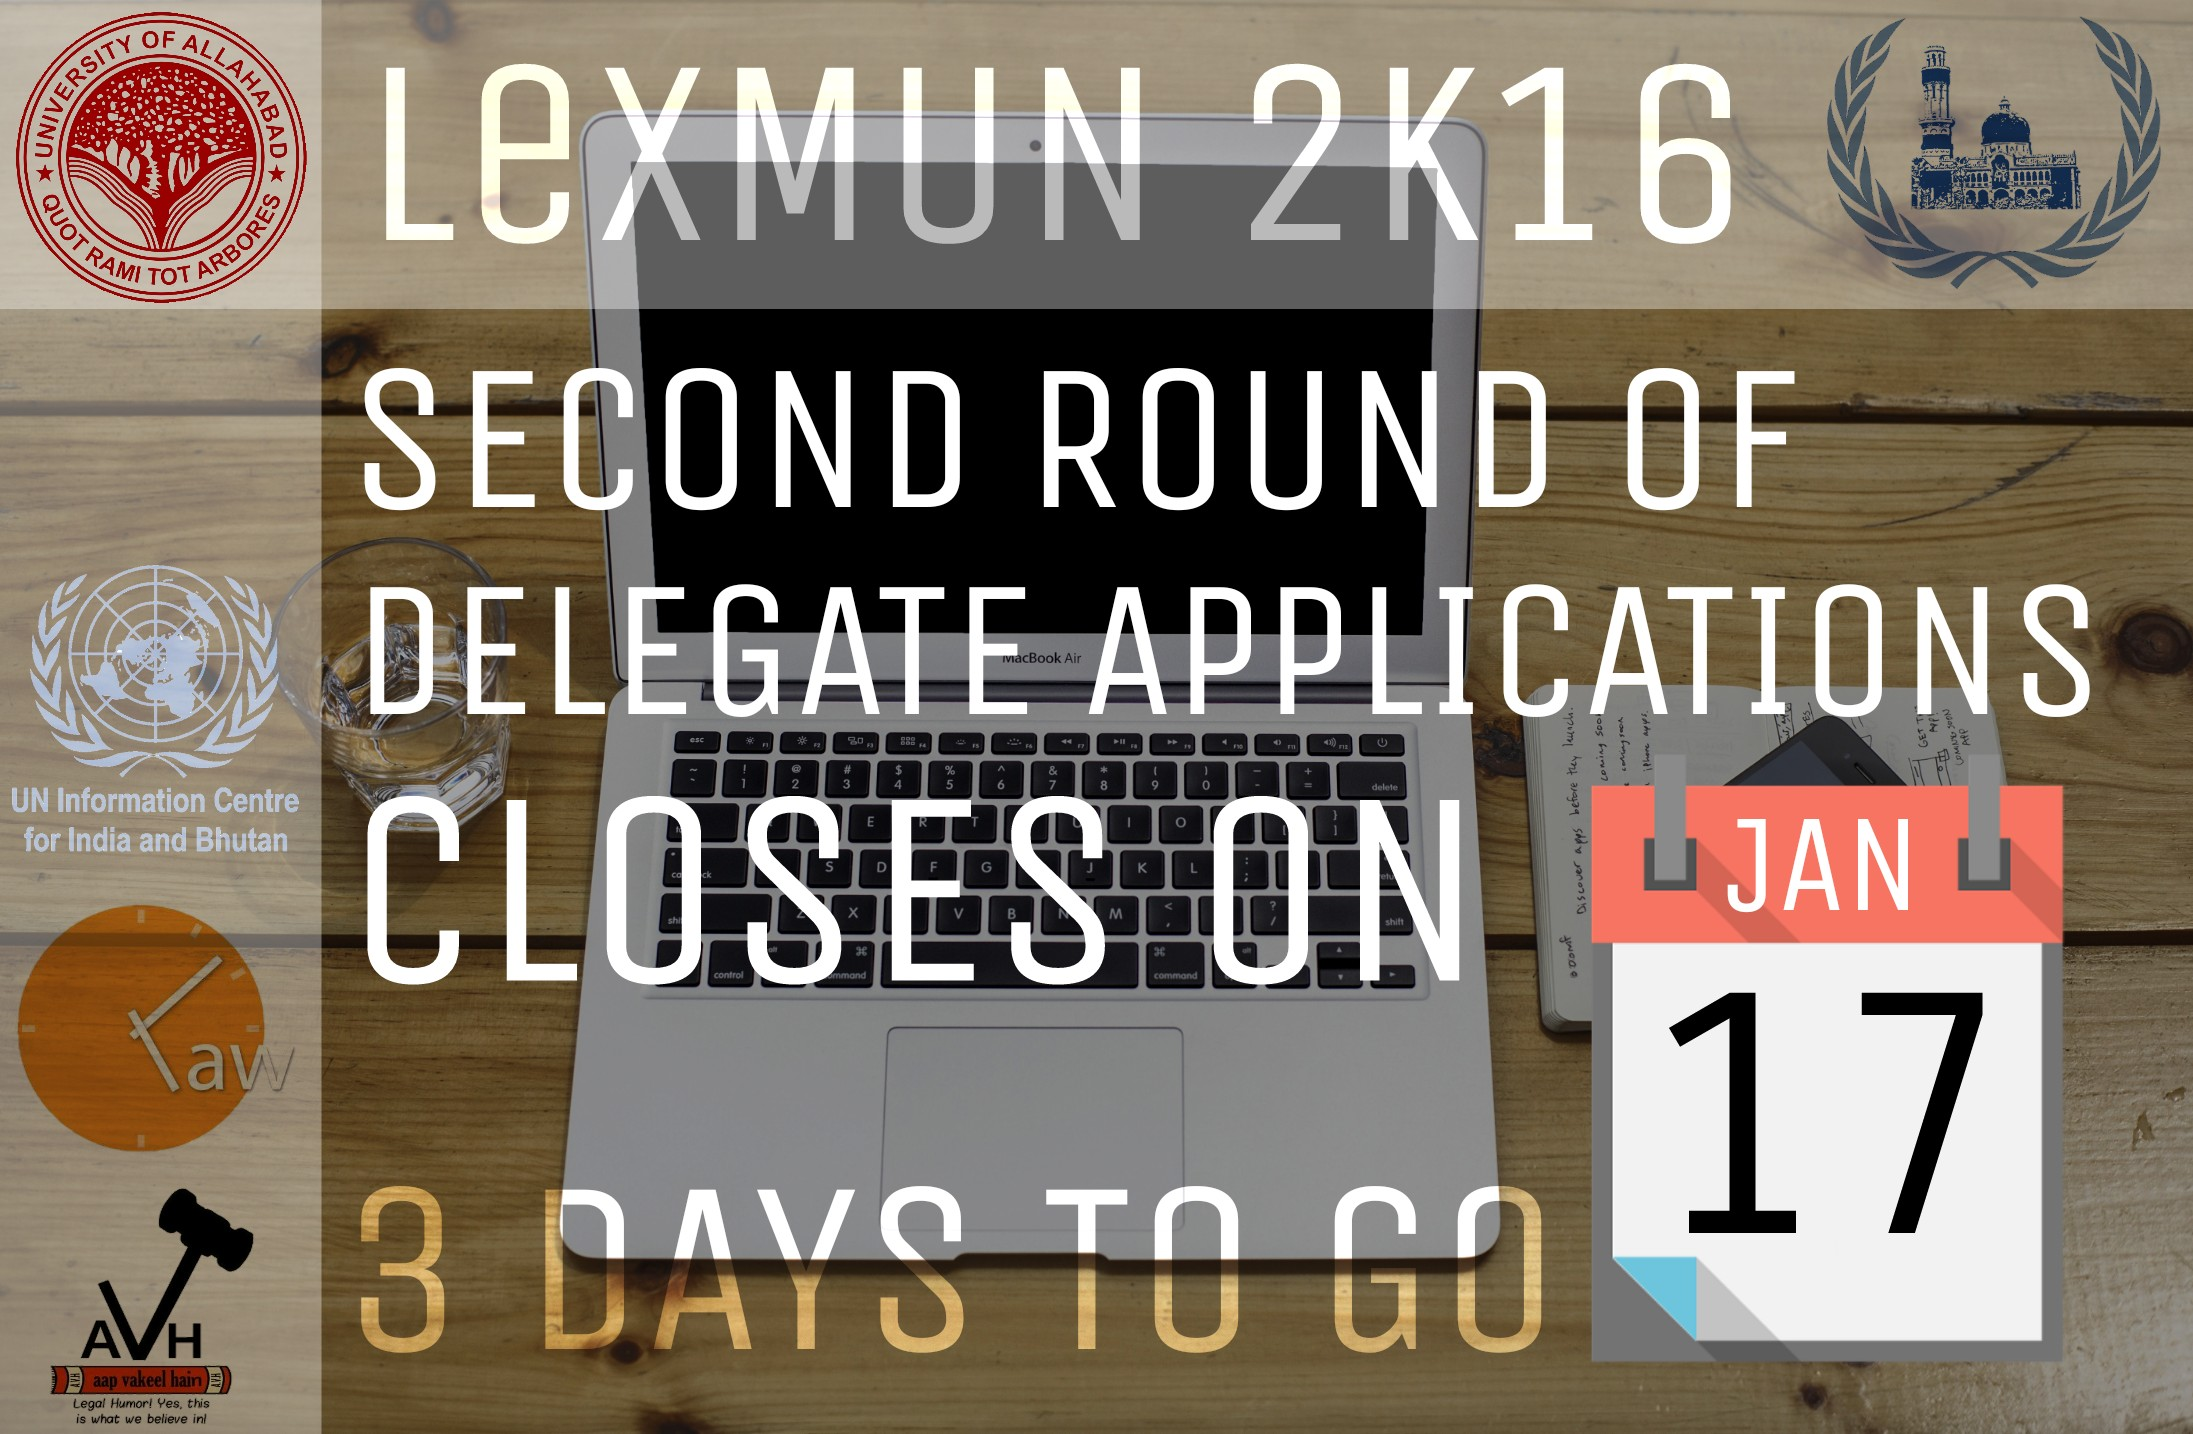 Faculty of law, University of Allahabad's Lex MUN Conference, 2016